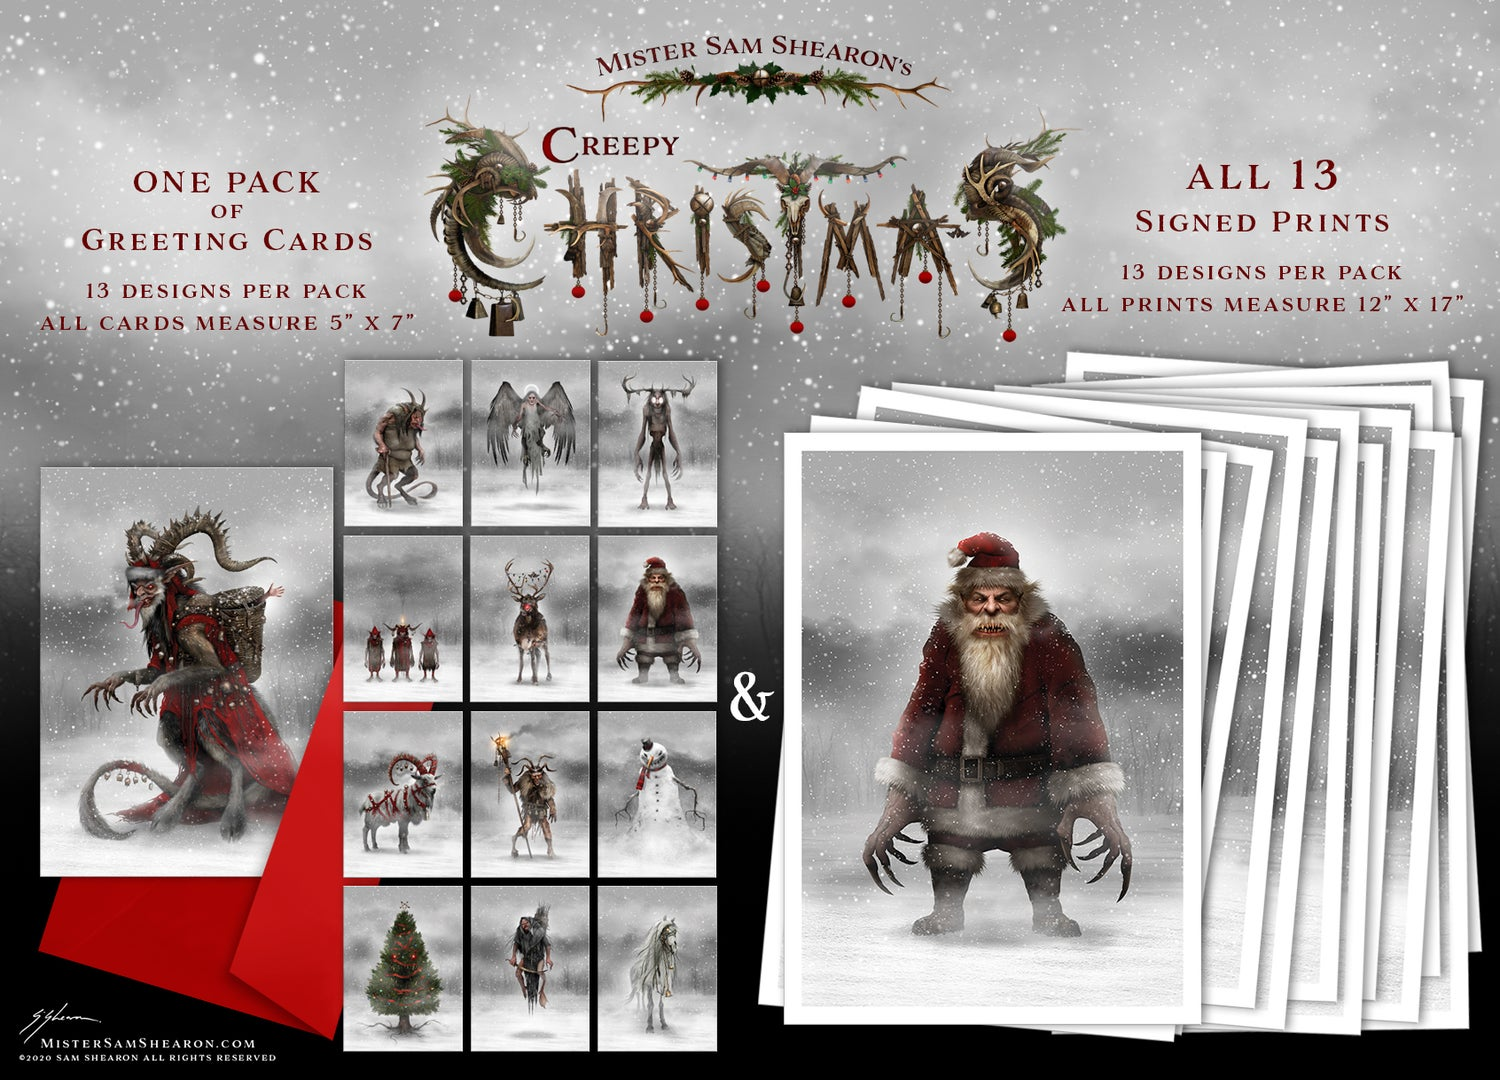 One Pack of Greeting Cards & ALL 13 Signed Prints!